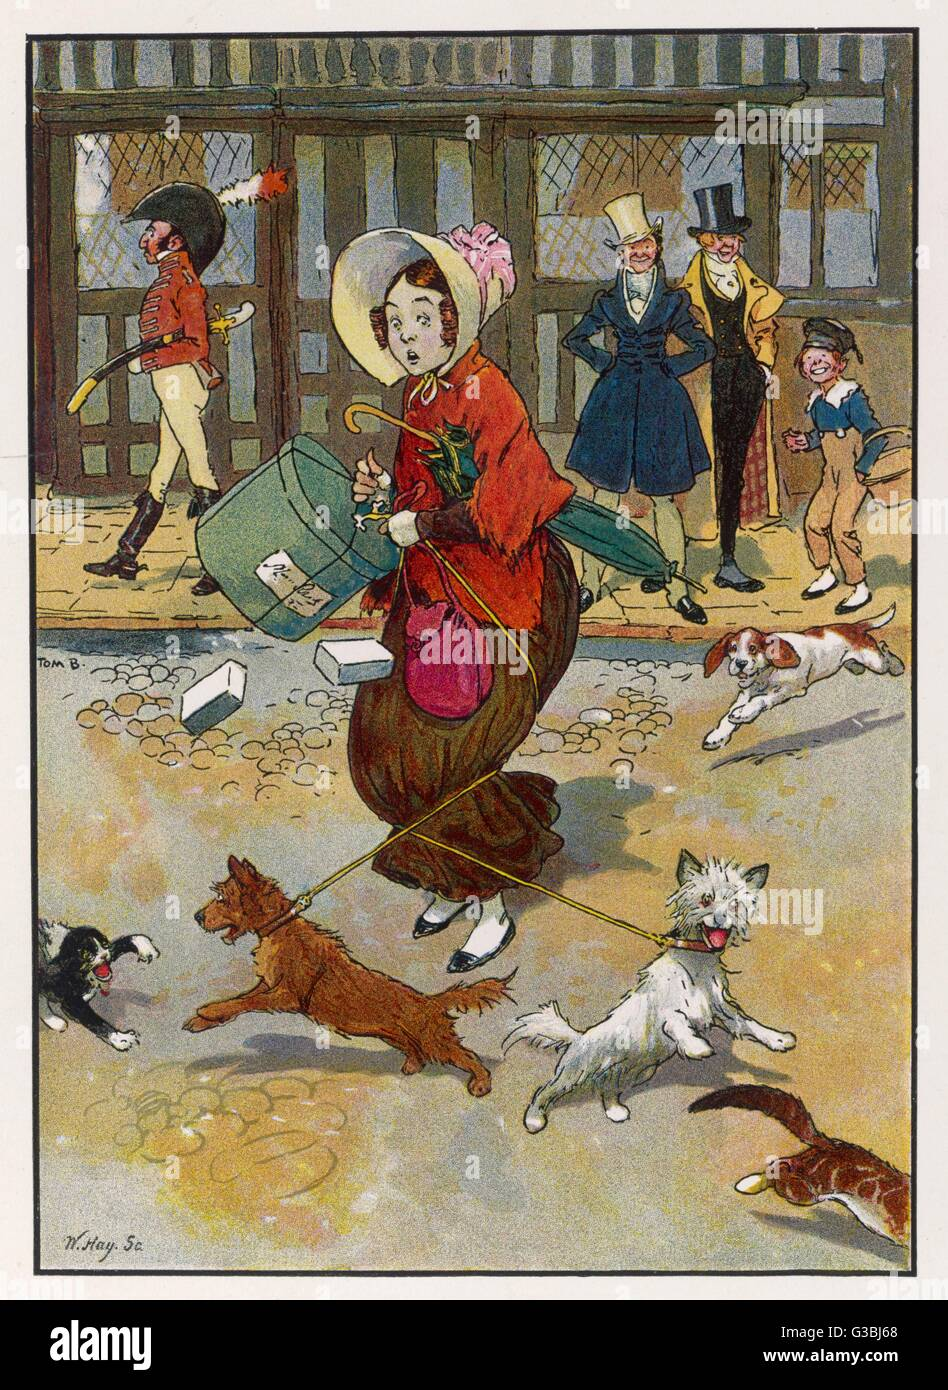 A lady crossing a street with  an armful of parcels gets into  difficulties when her two dogs  each decide to chase - Stock Image